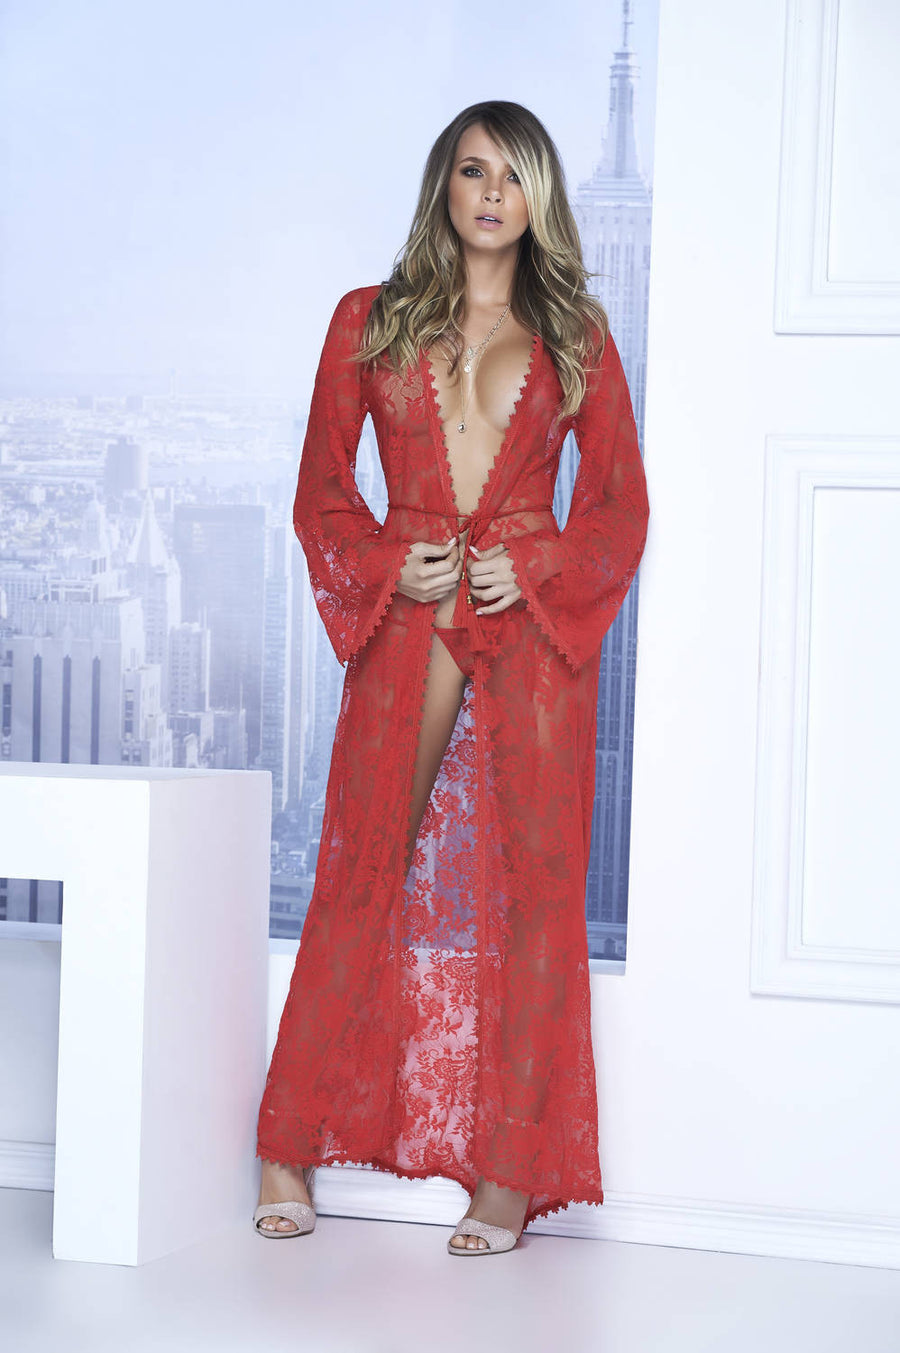 Long Lace Robe With Tassel Belt And G-String - Fashion